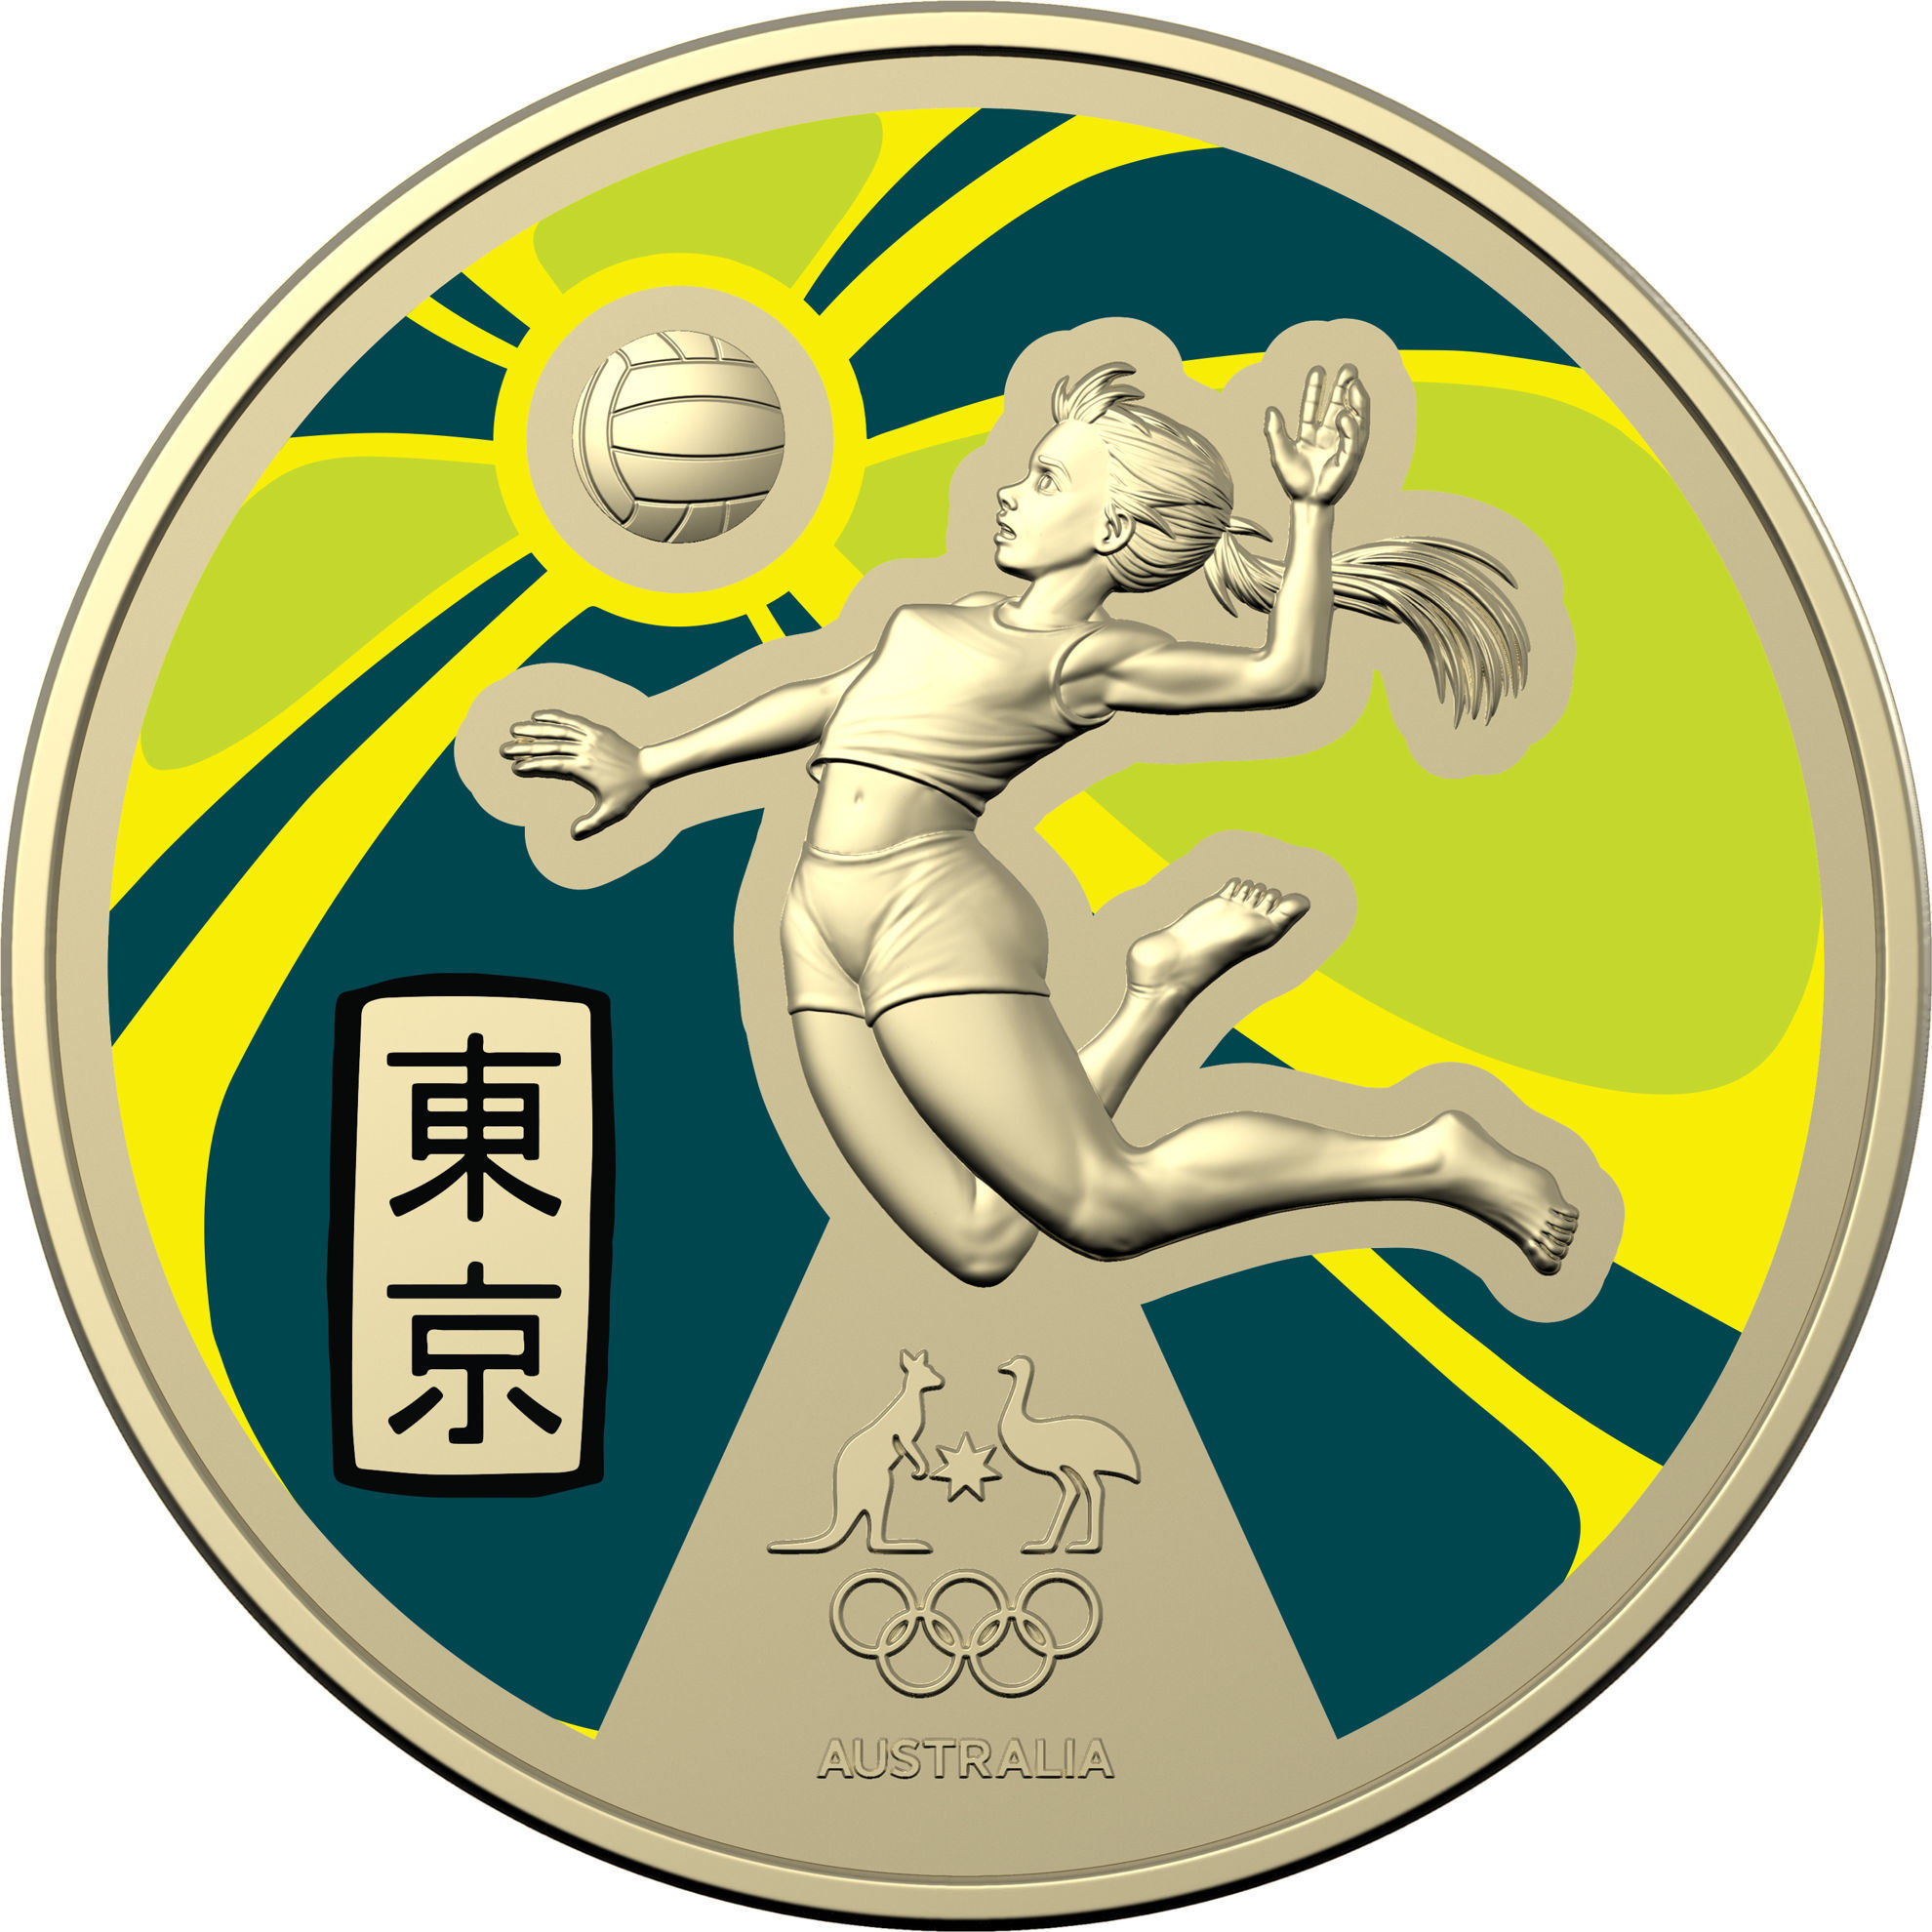 2020 australian coins celebrating Olympic games national team